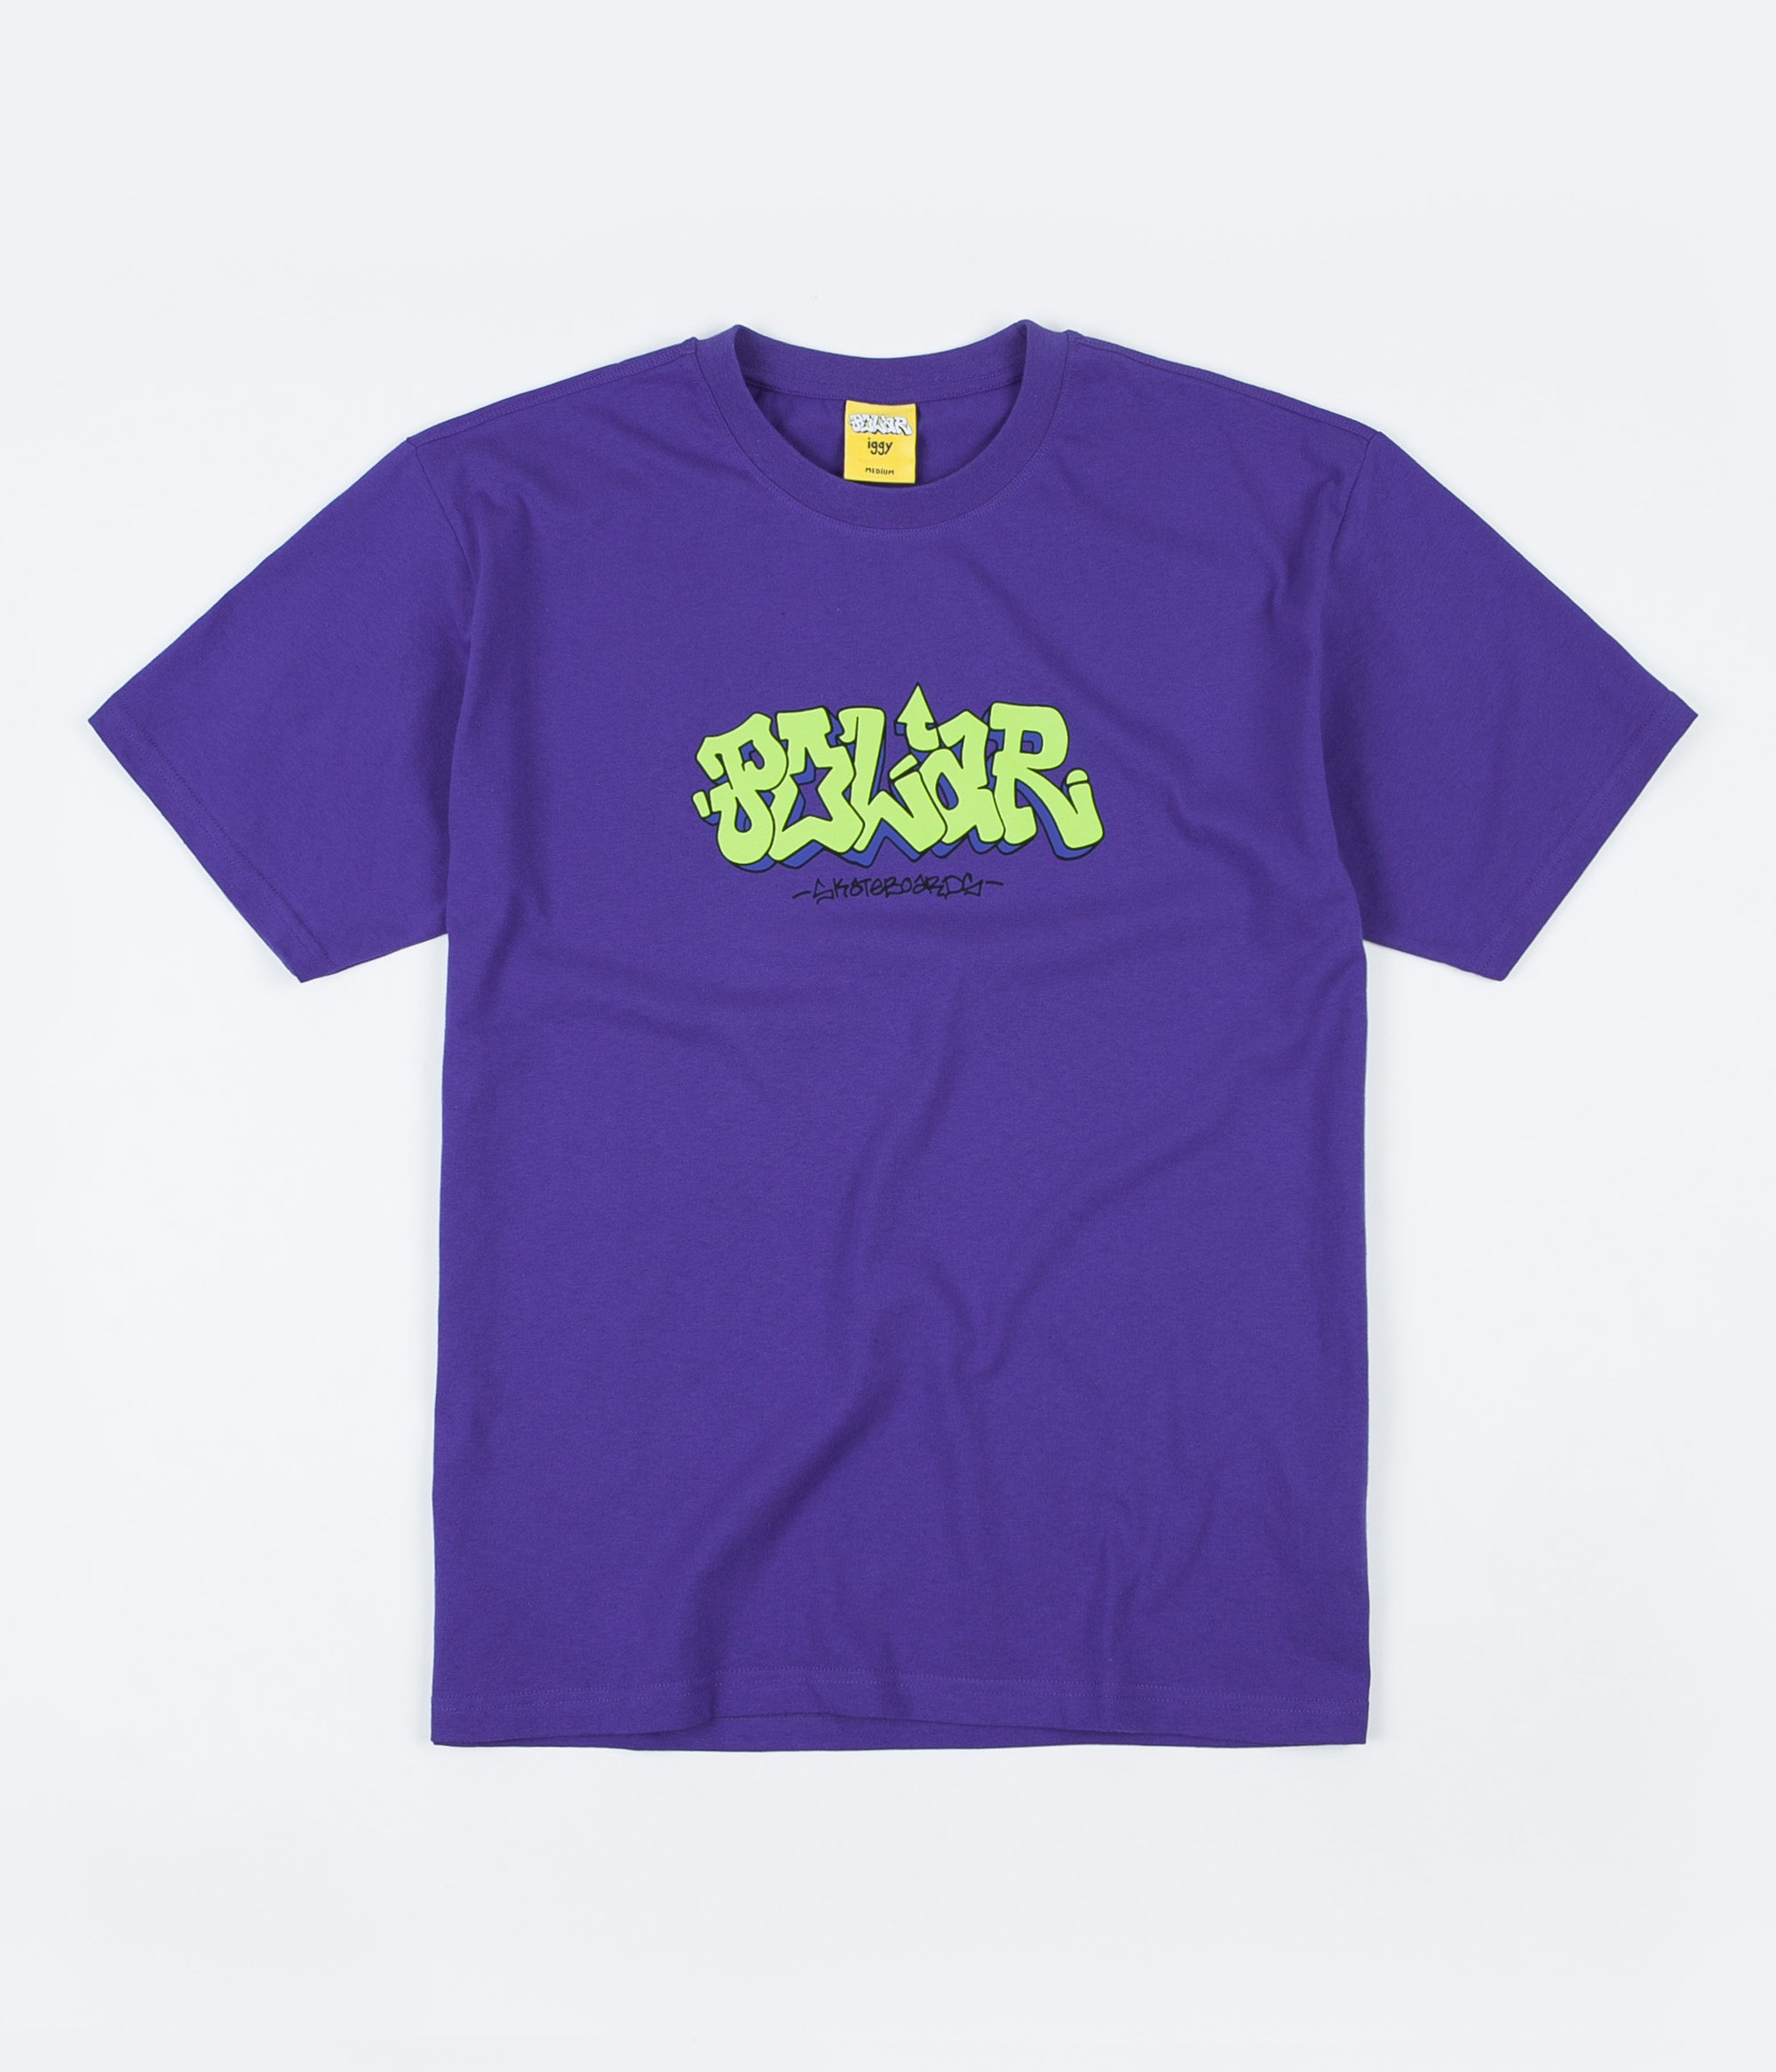 Polar x Iggy Graf T-Shirt - Blueish Purple